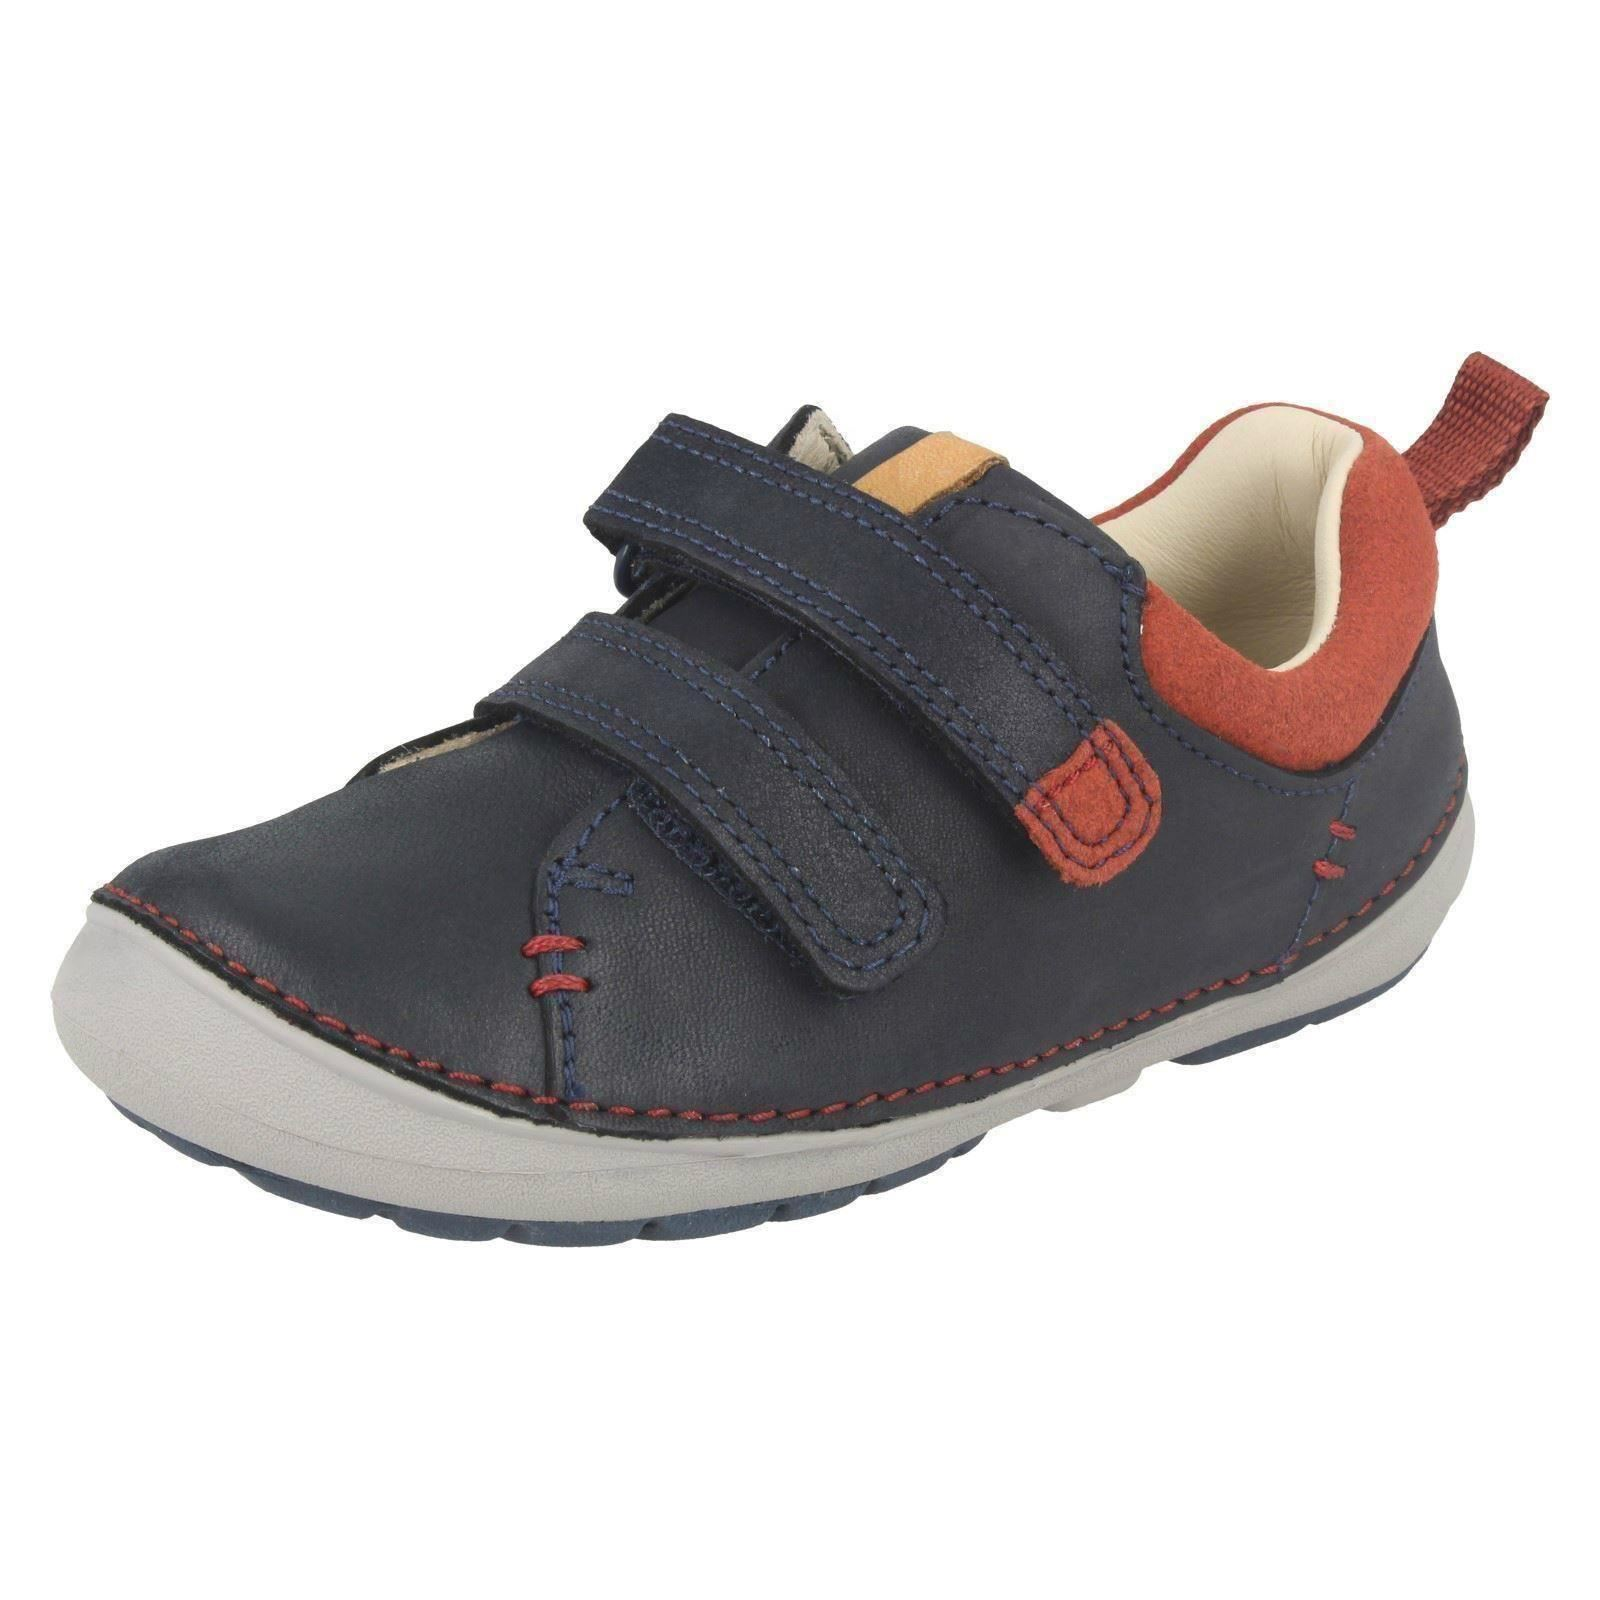 Clarks Softly Toby Fst Boys First Shoes 5 H Navy f2ePm1xq4